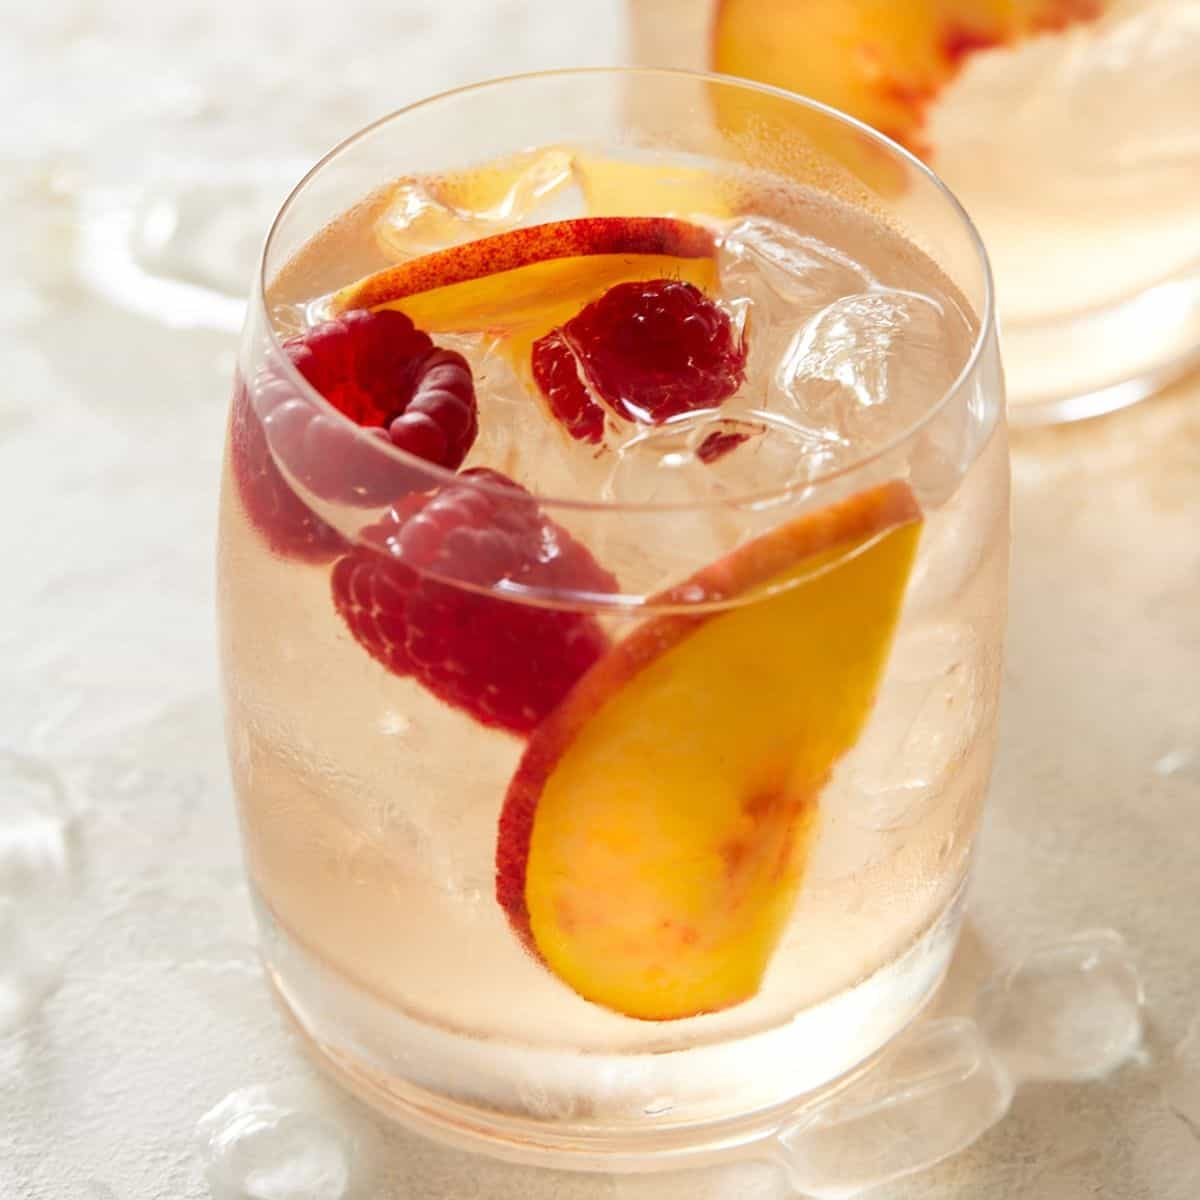 Glass of Rosé Sangria garnished with fresh peach slices and raspberries.